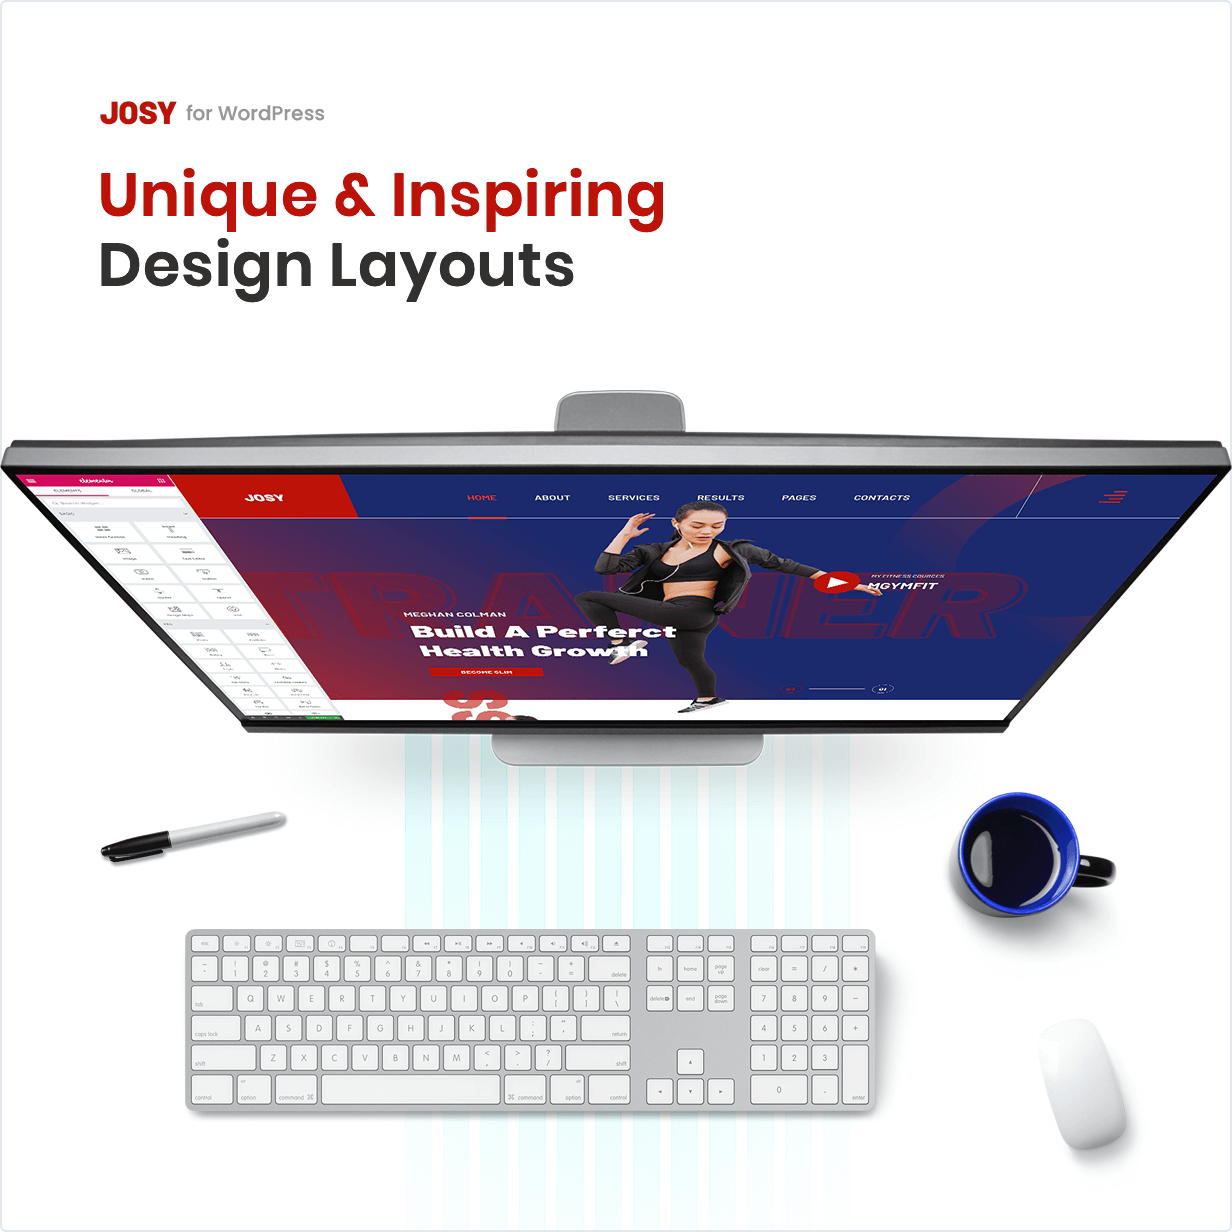 Unique & Inspiring Design Layouts